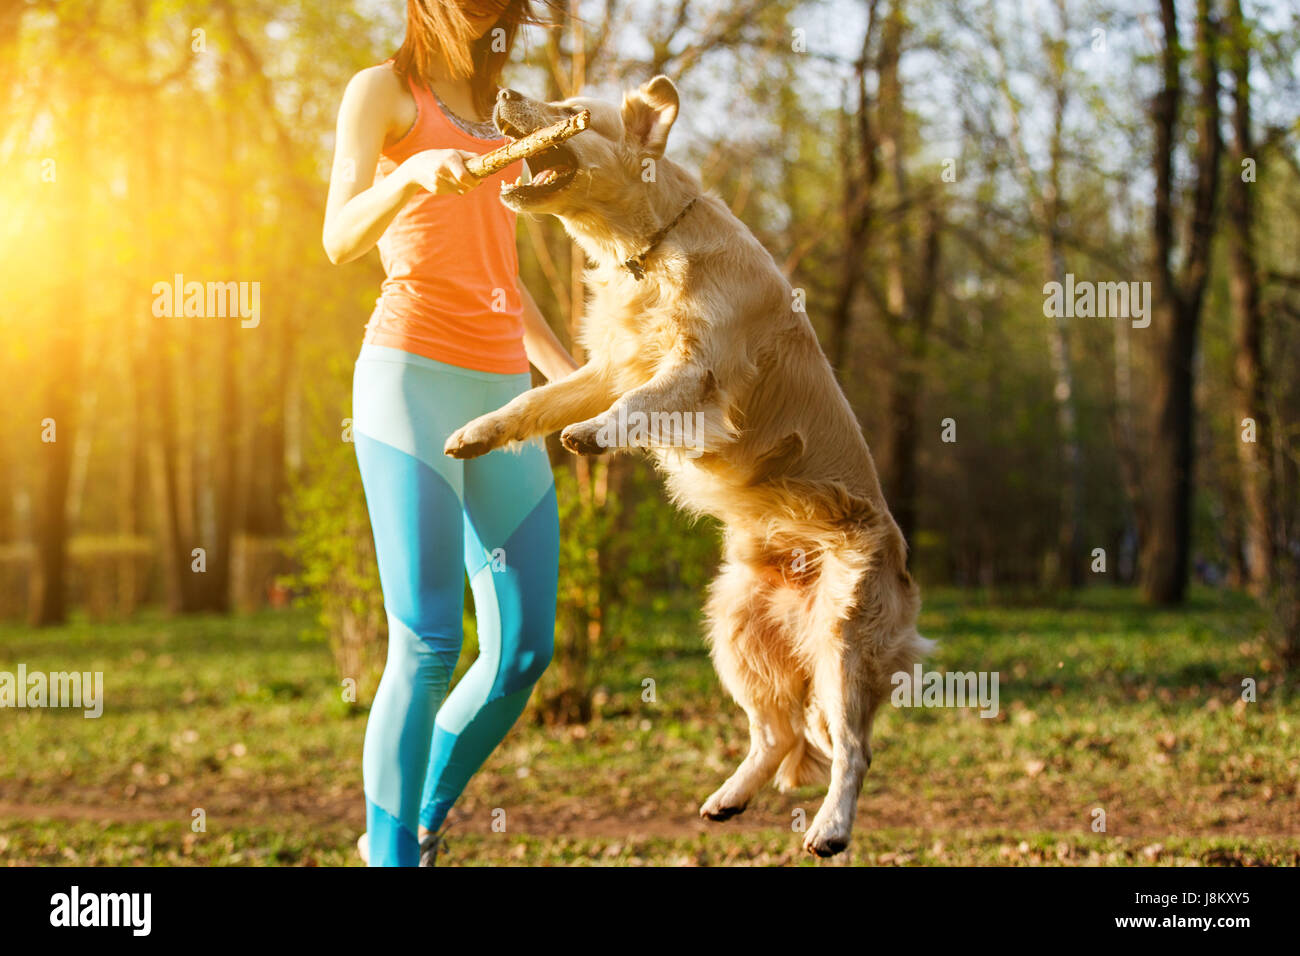 Young woman playing with dog - Stock Image